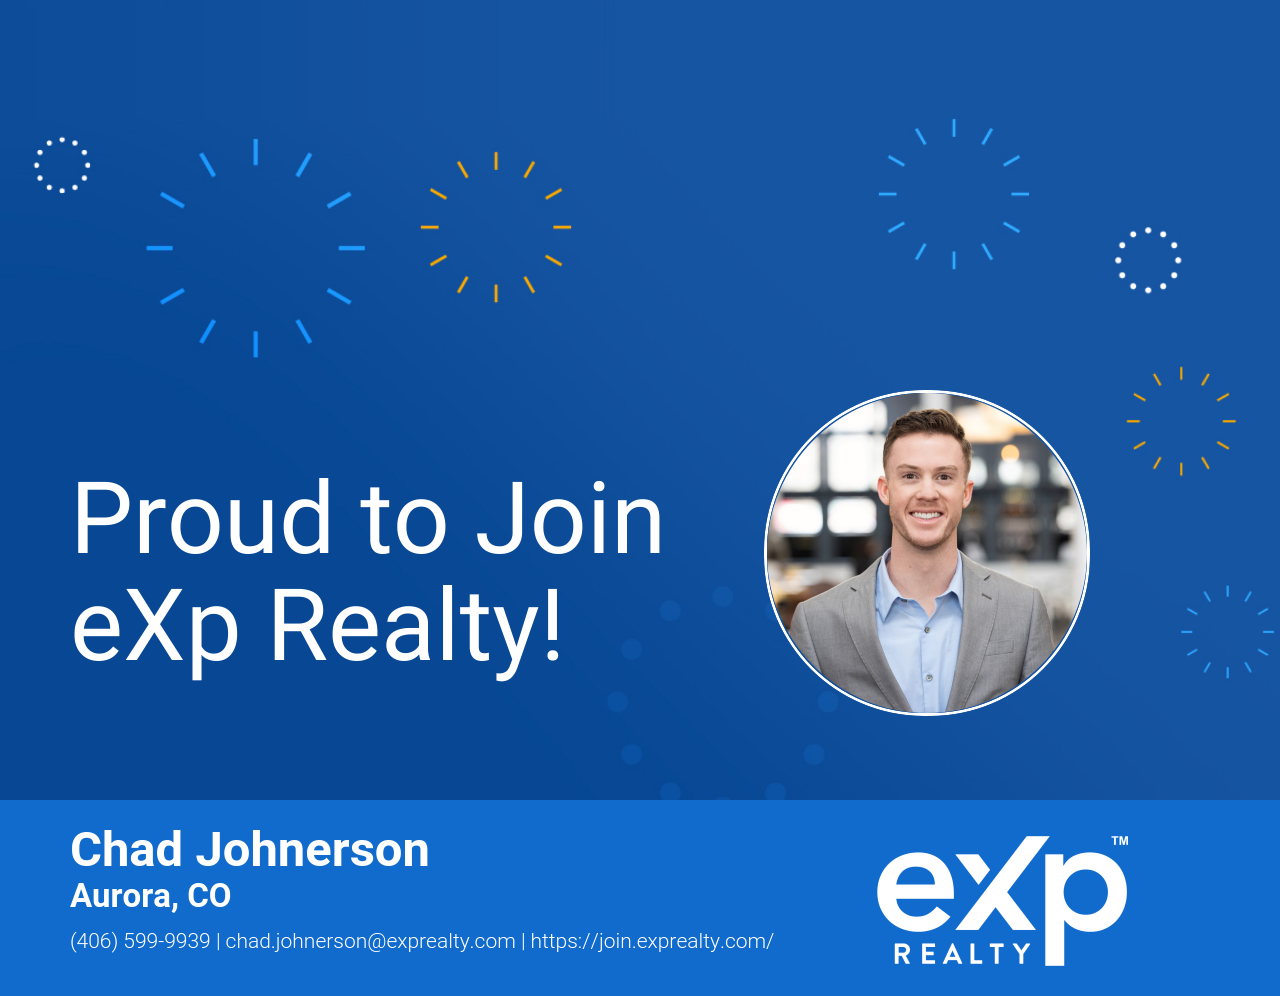 Chad Johnerson Joined eXp Realty!